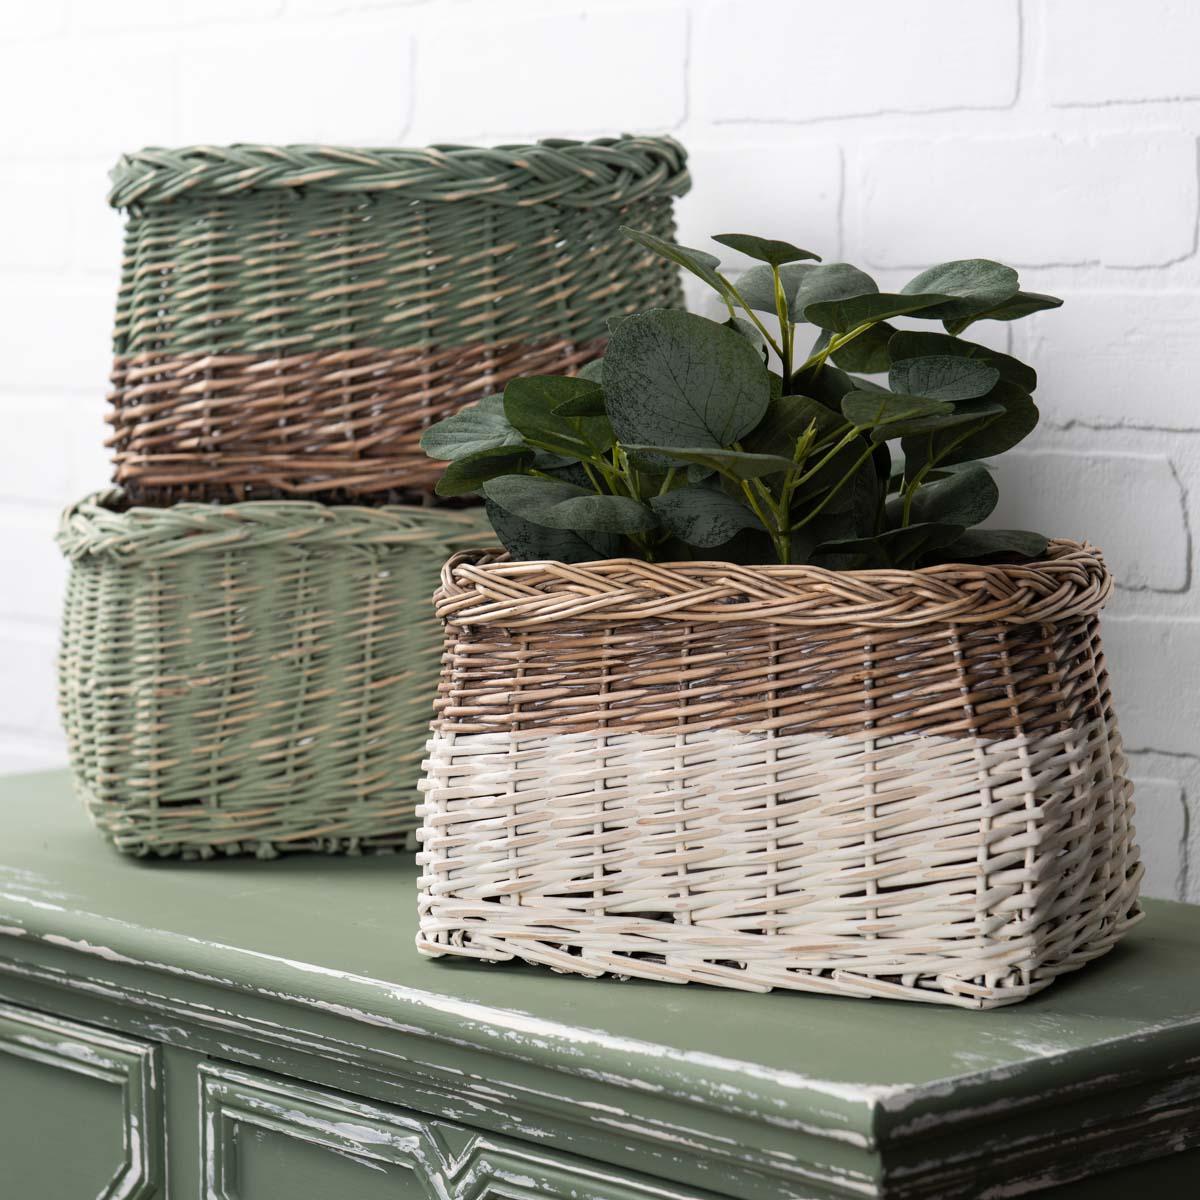 Dipped Baskets